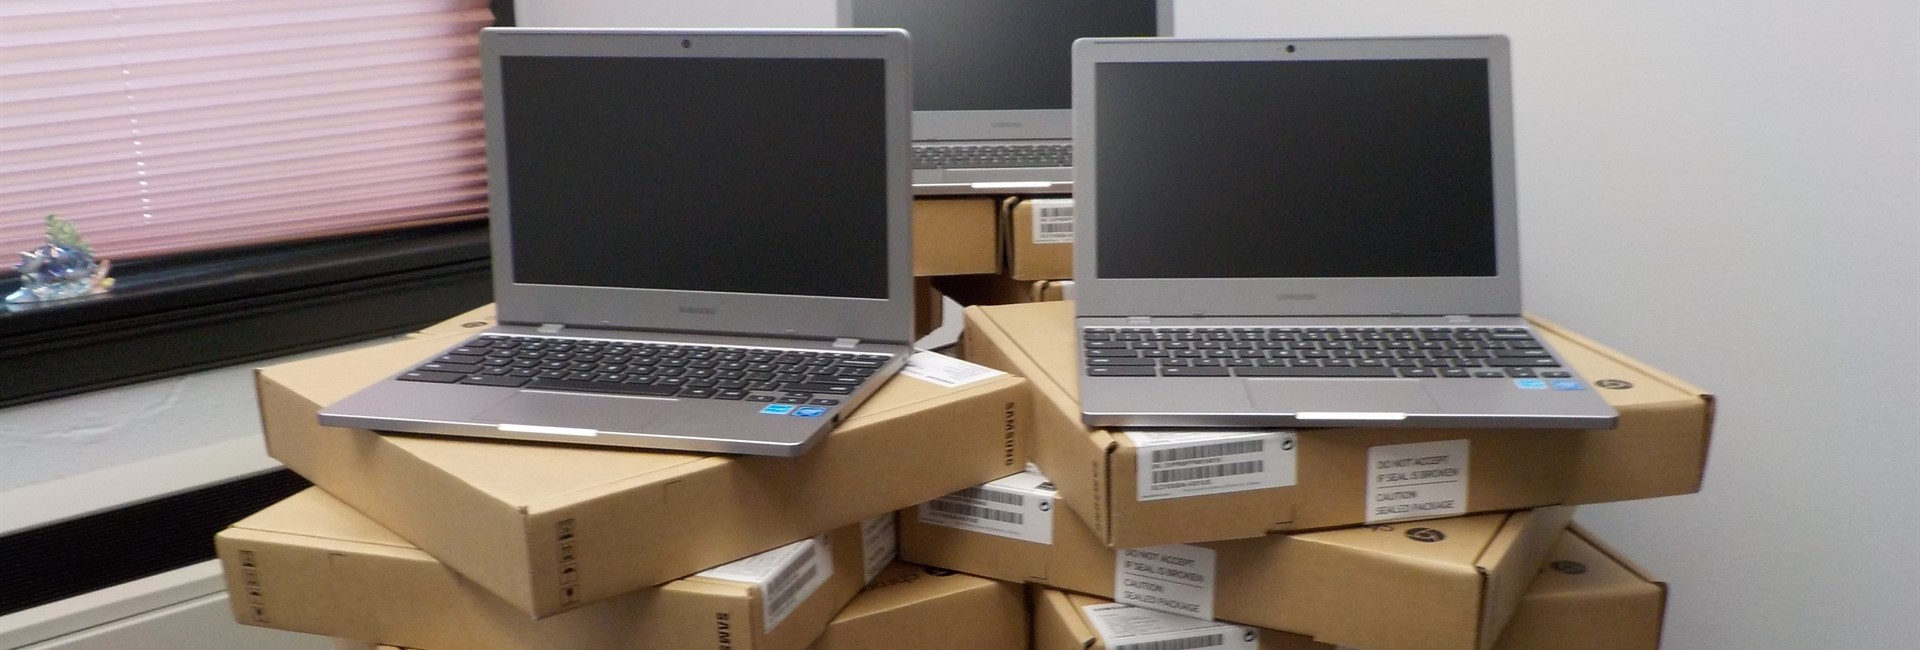 Donated Laptops from World Affairs Council